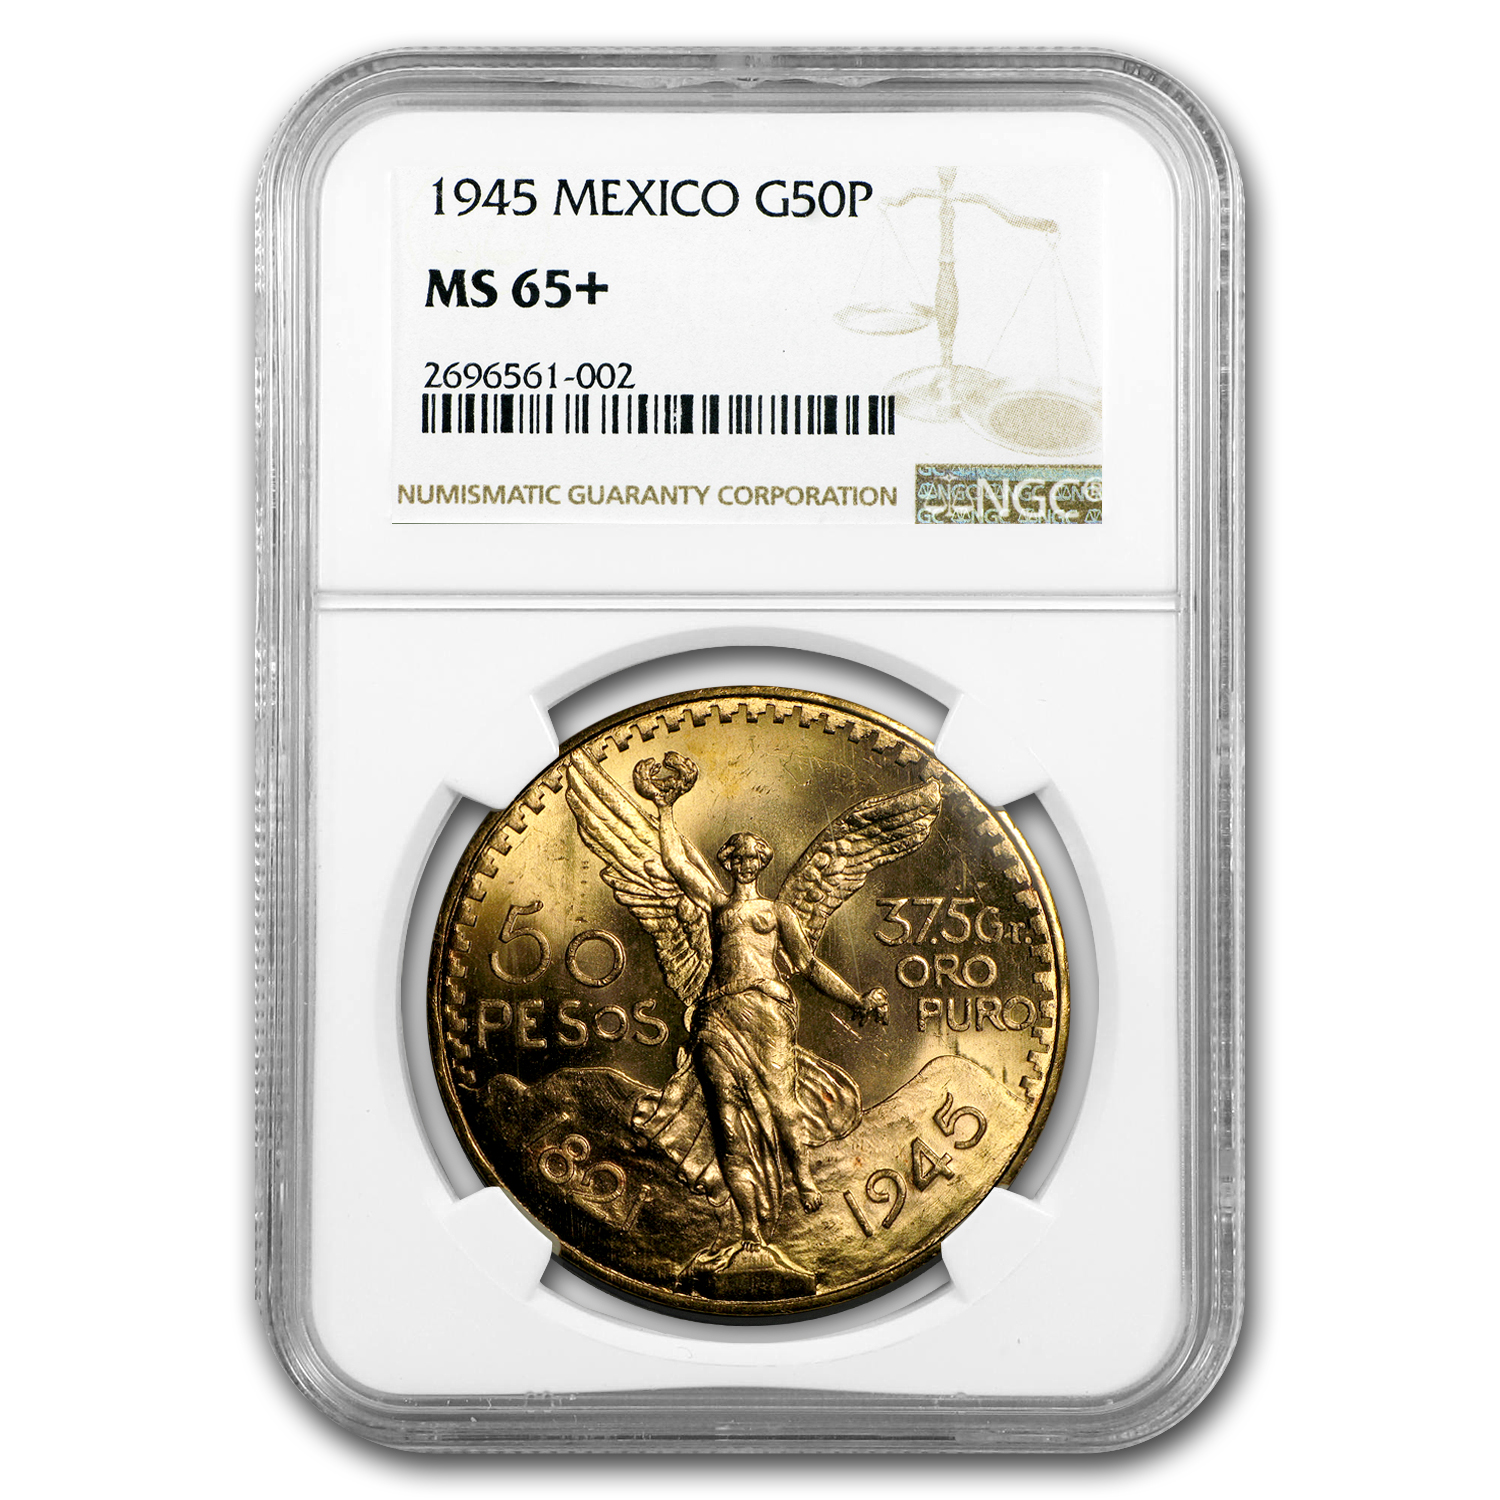 1945 Mexico Gold 50 Pesos MS-65+ NGC